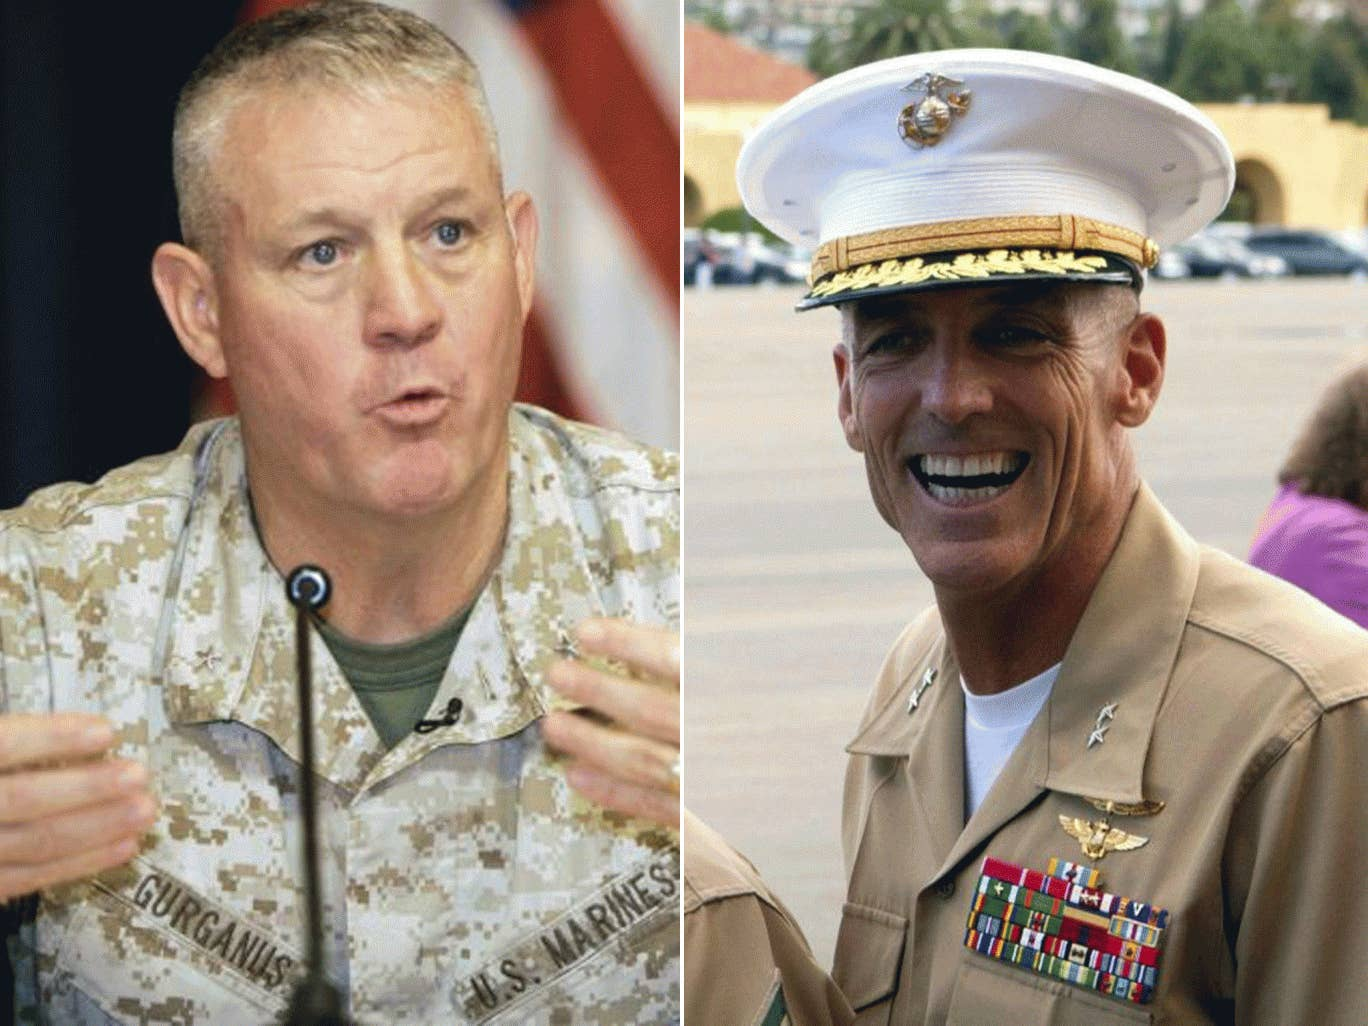 Major General Charles M. Gurganus (left) and Major General Gregg A. Sturdevant (right) were found not to have taken 'adequate' measures to defend a military base from Taliban attack